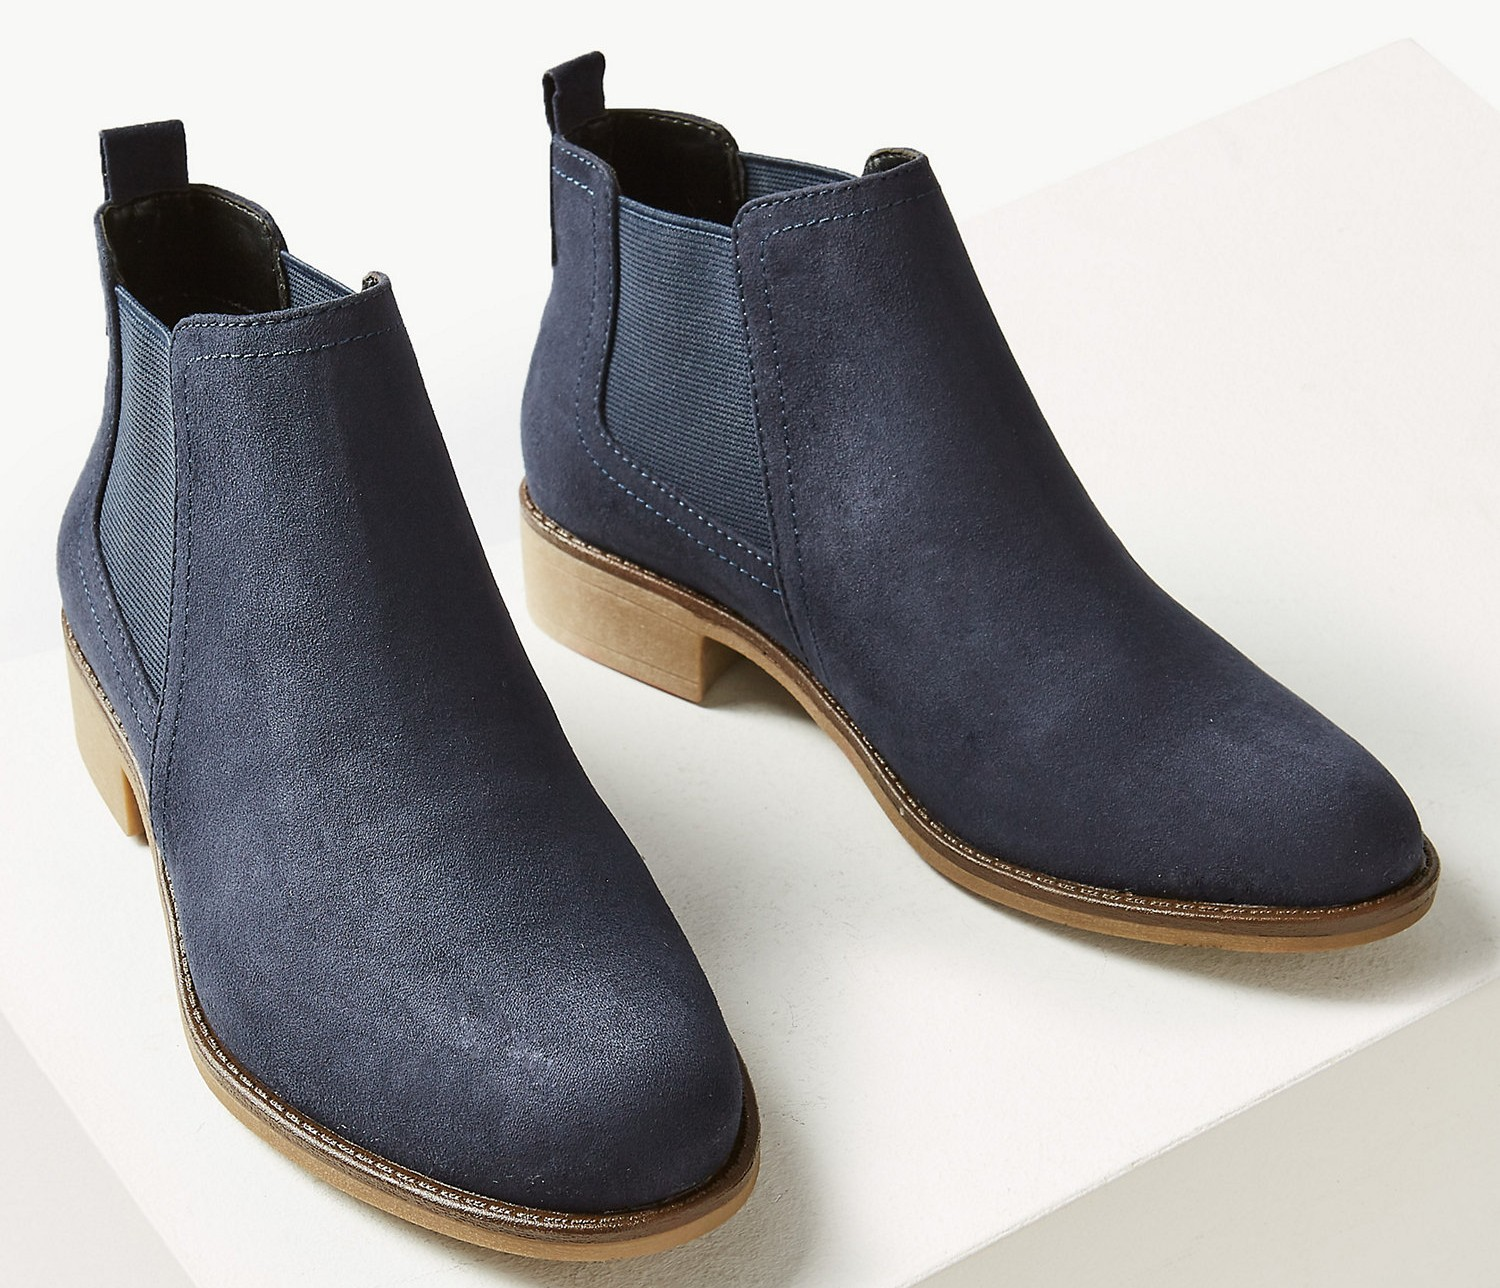 These M\u0026S Chelsea boots are set to sell